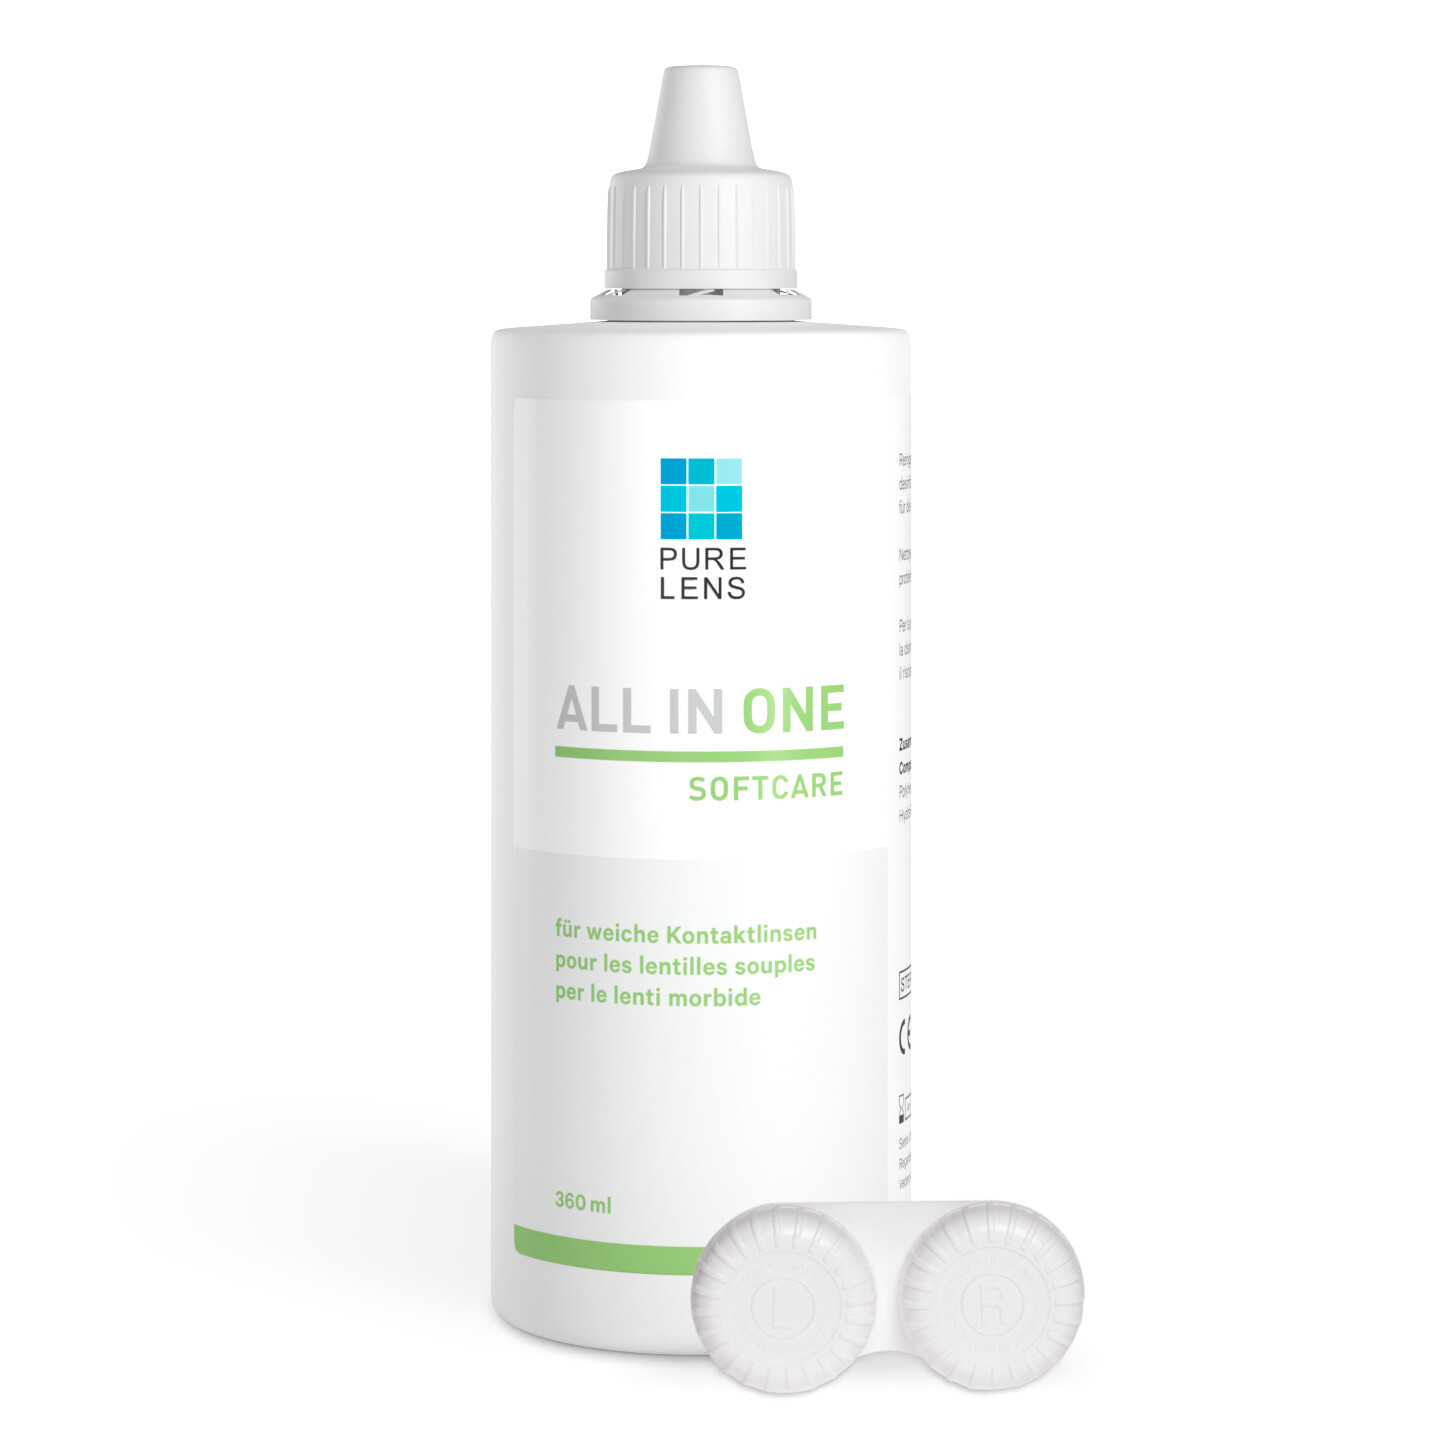 Softcare - All in One (360ml)